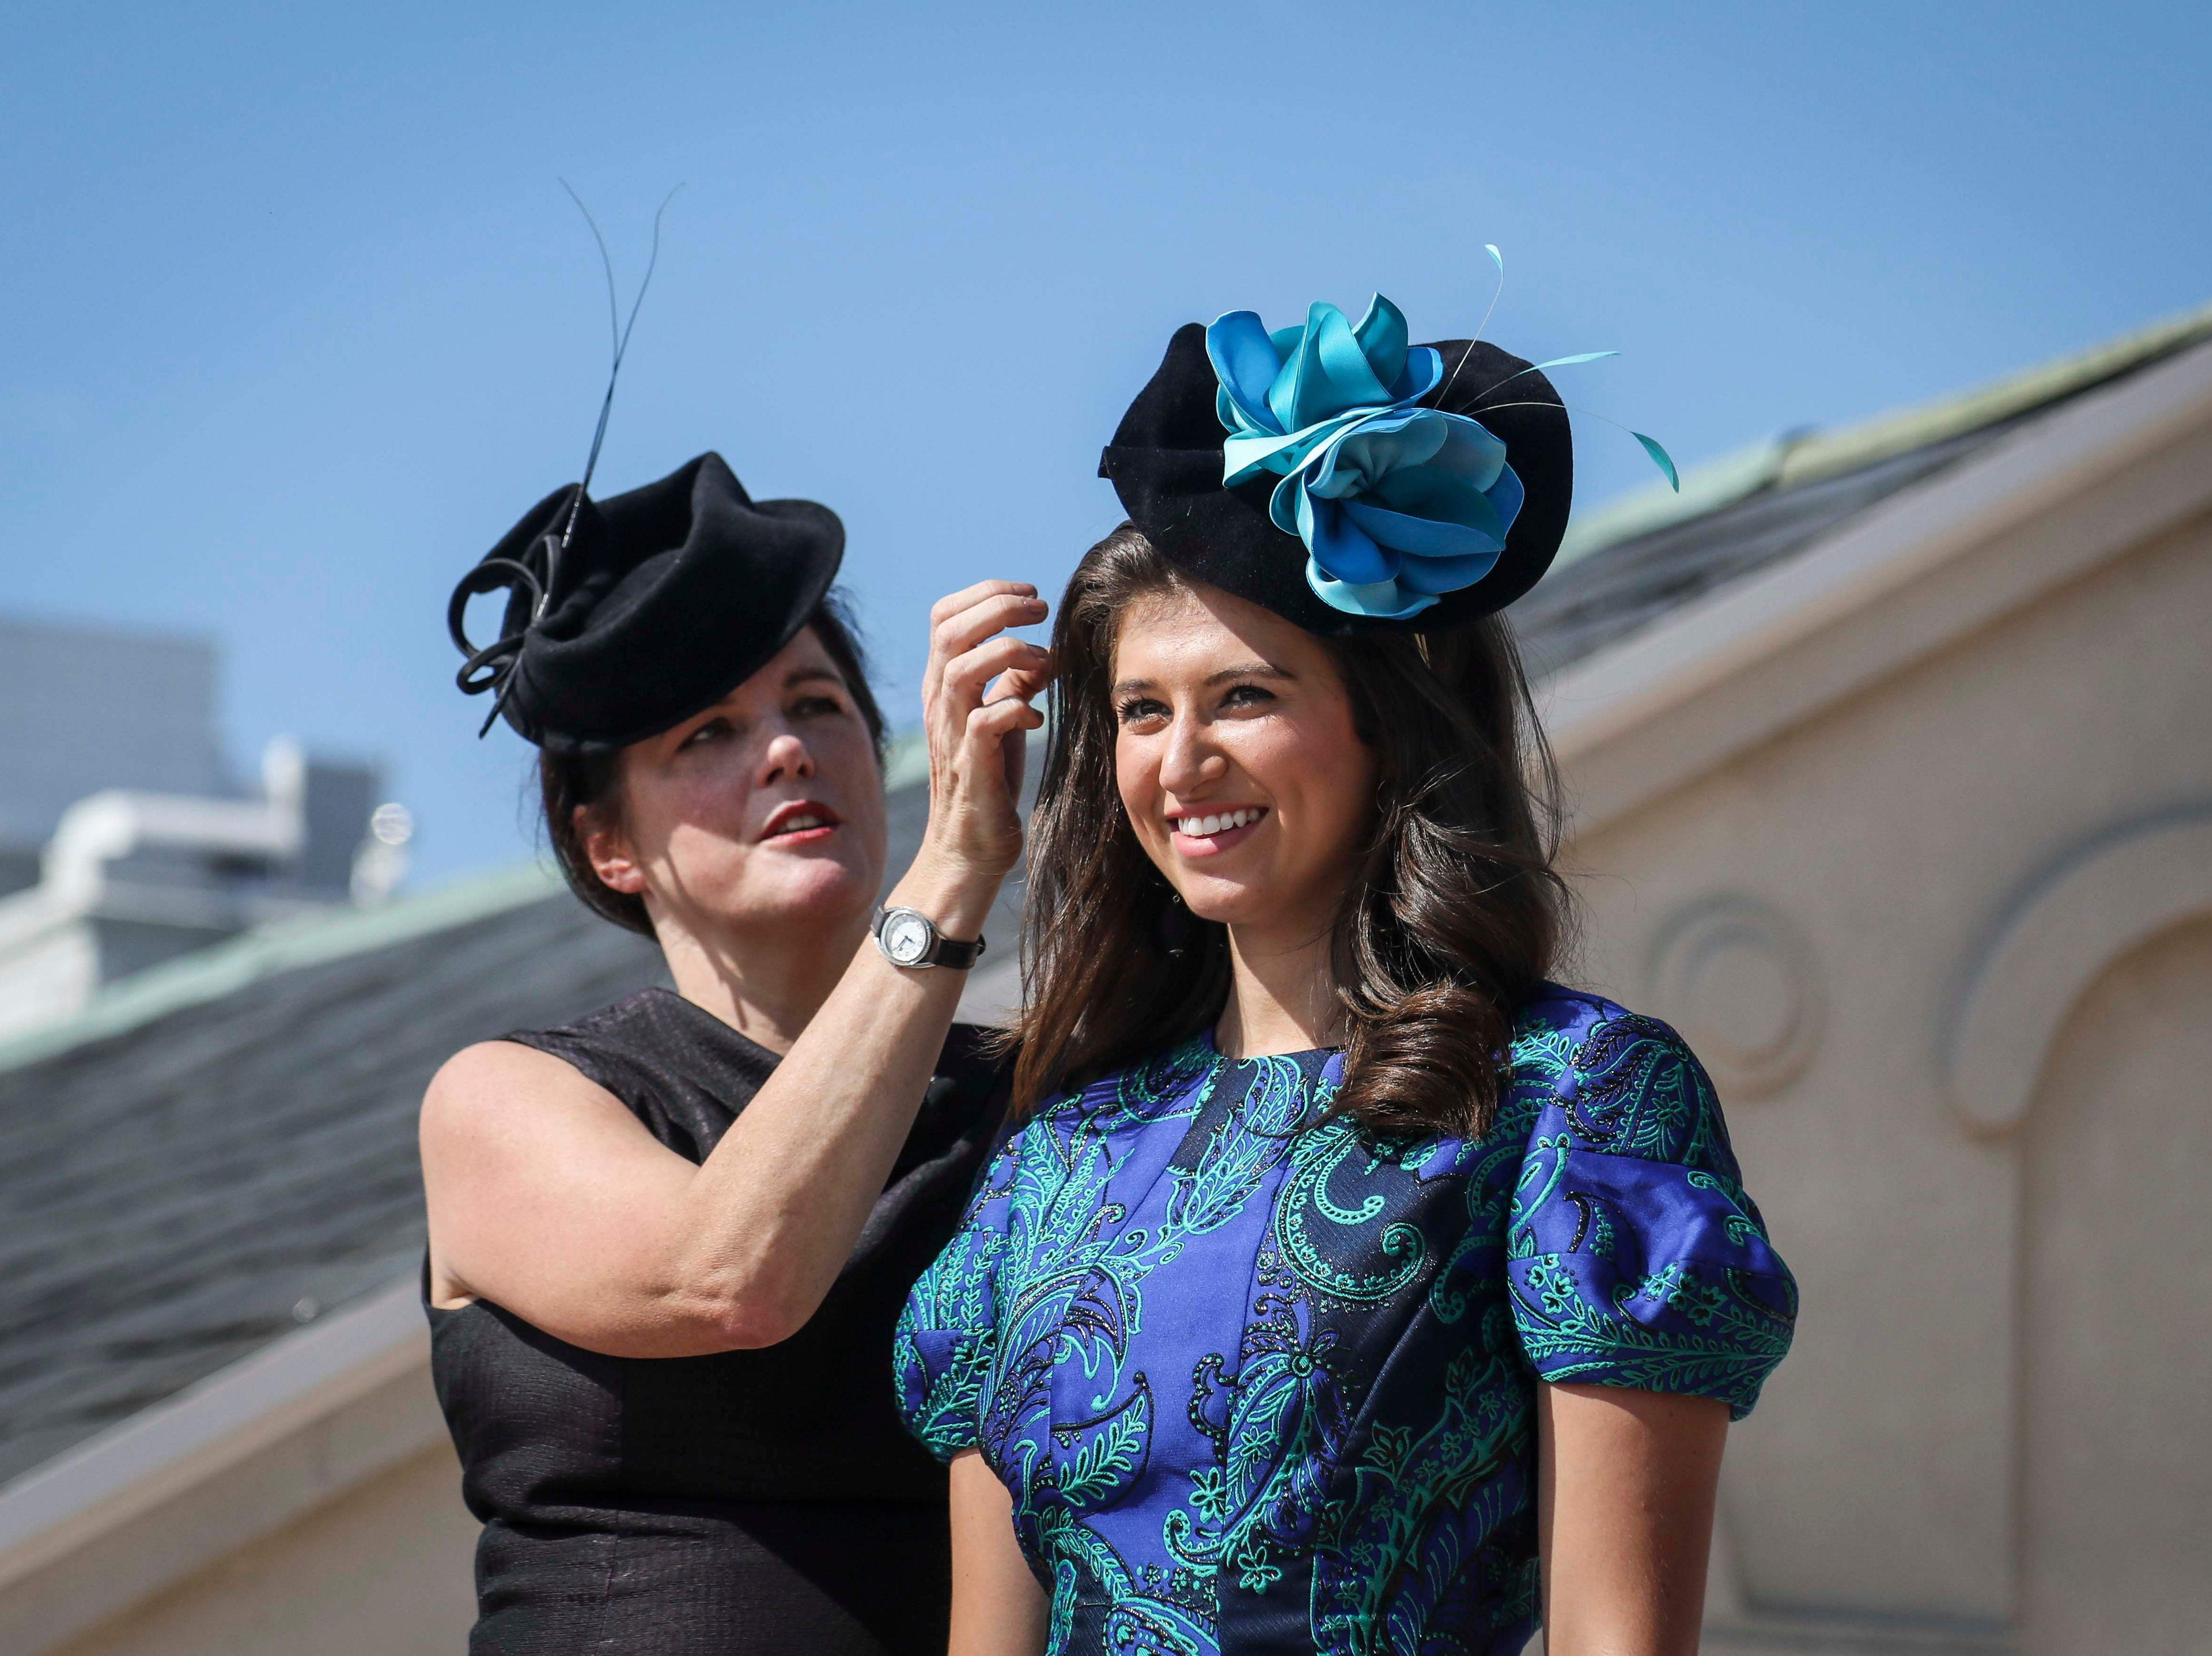 Christine Moore, left, track fashion expert and owner of Cam Hats, shows how to properly wear a fascinator on Katie Bouchard, Miss Kentucky, during an interview with the Courier Journal ahead of the Breeders Cup (November 3) at Churchill Downs on Wednesday, October 3, 2018.